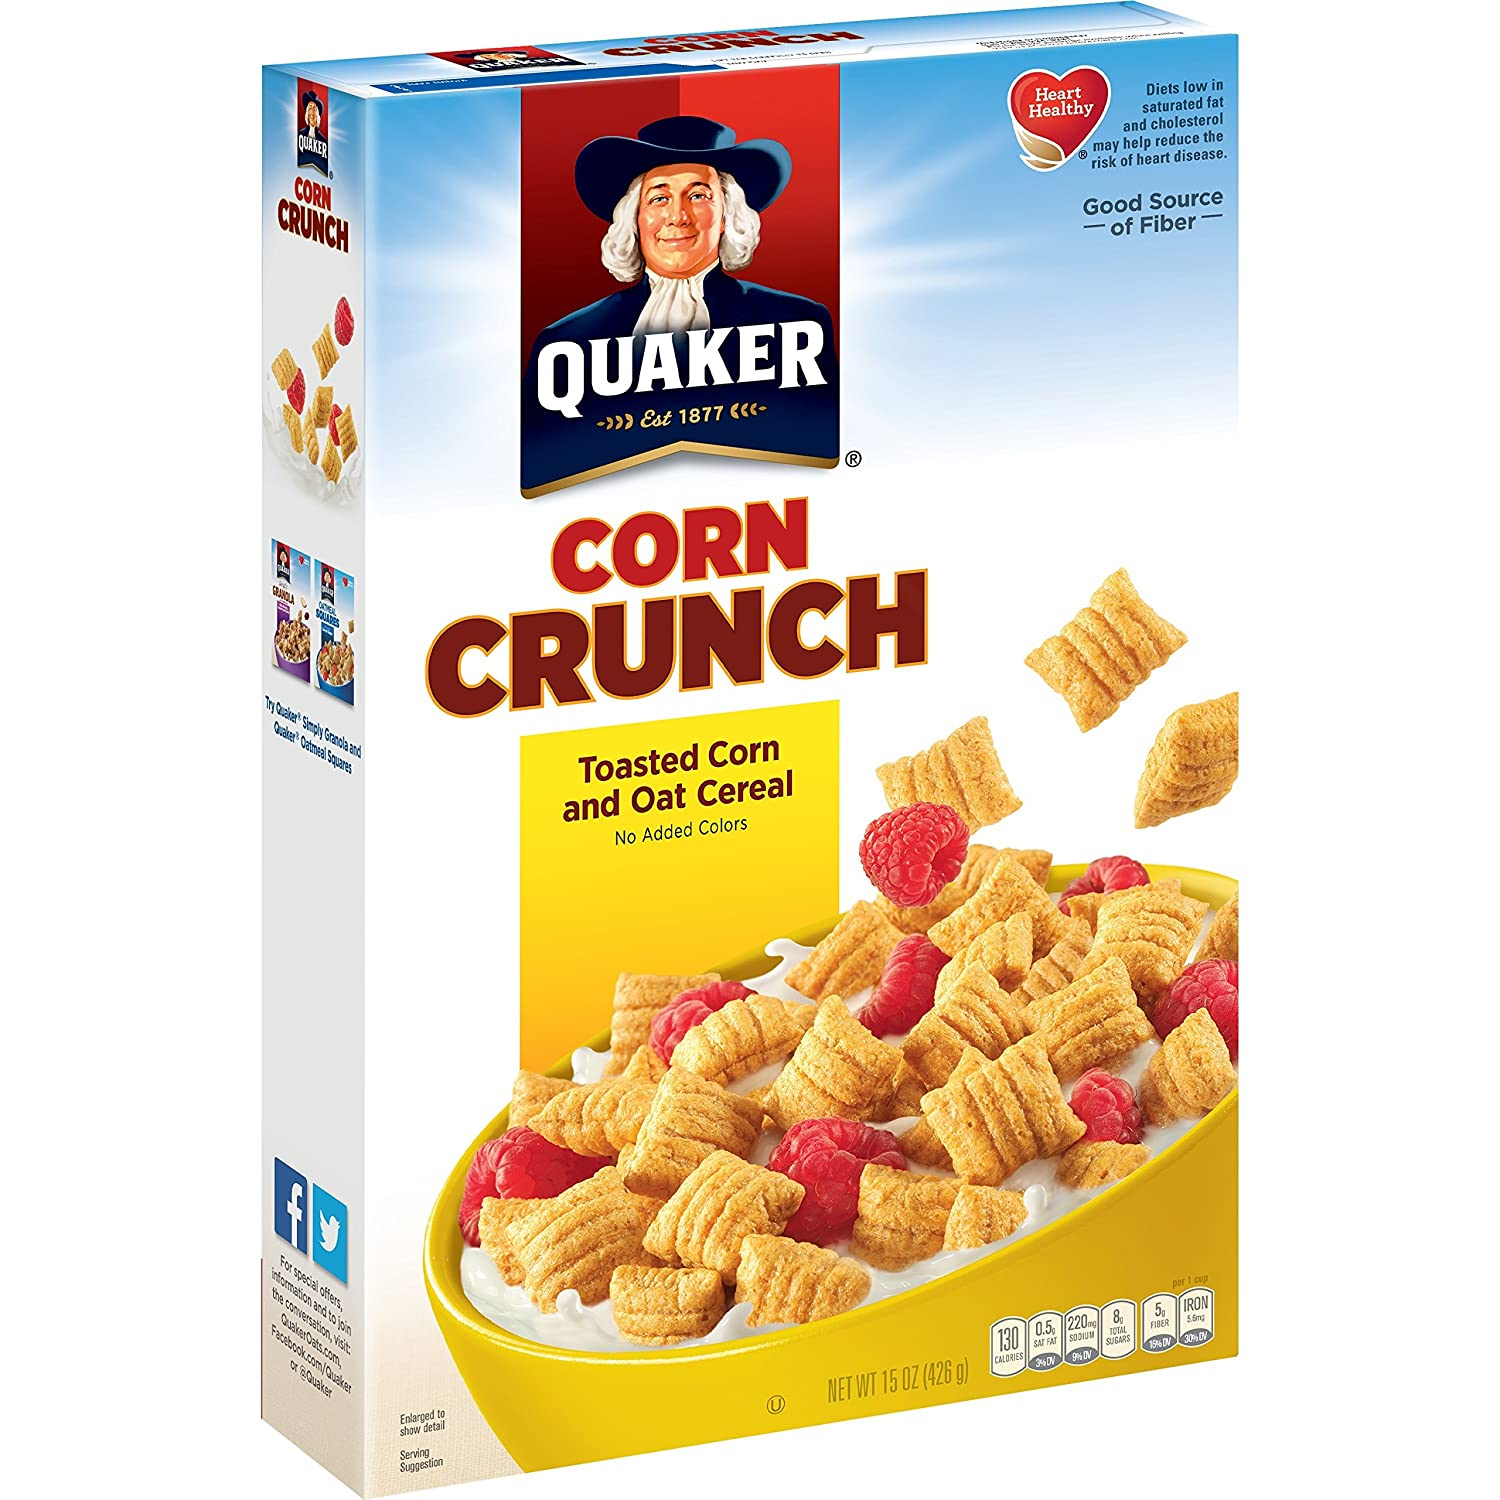 Quaker Corn Crunch, Toasted Corn and Oat Breakfast Cereal, 15oz (Pack of 14)